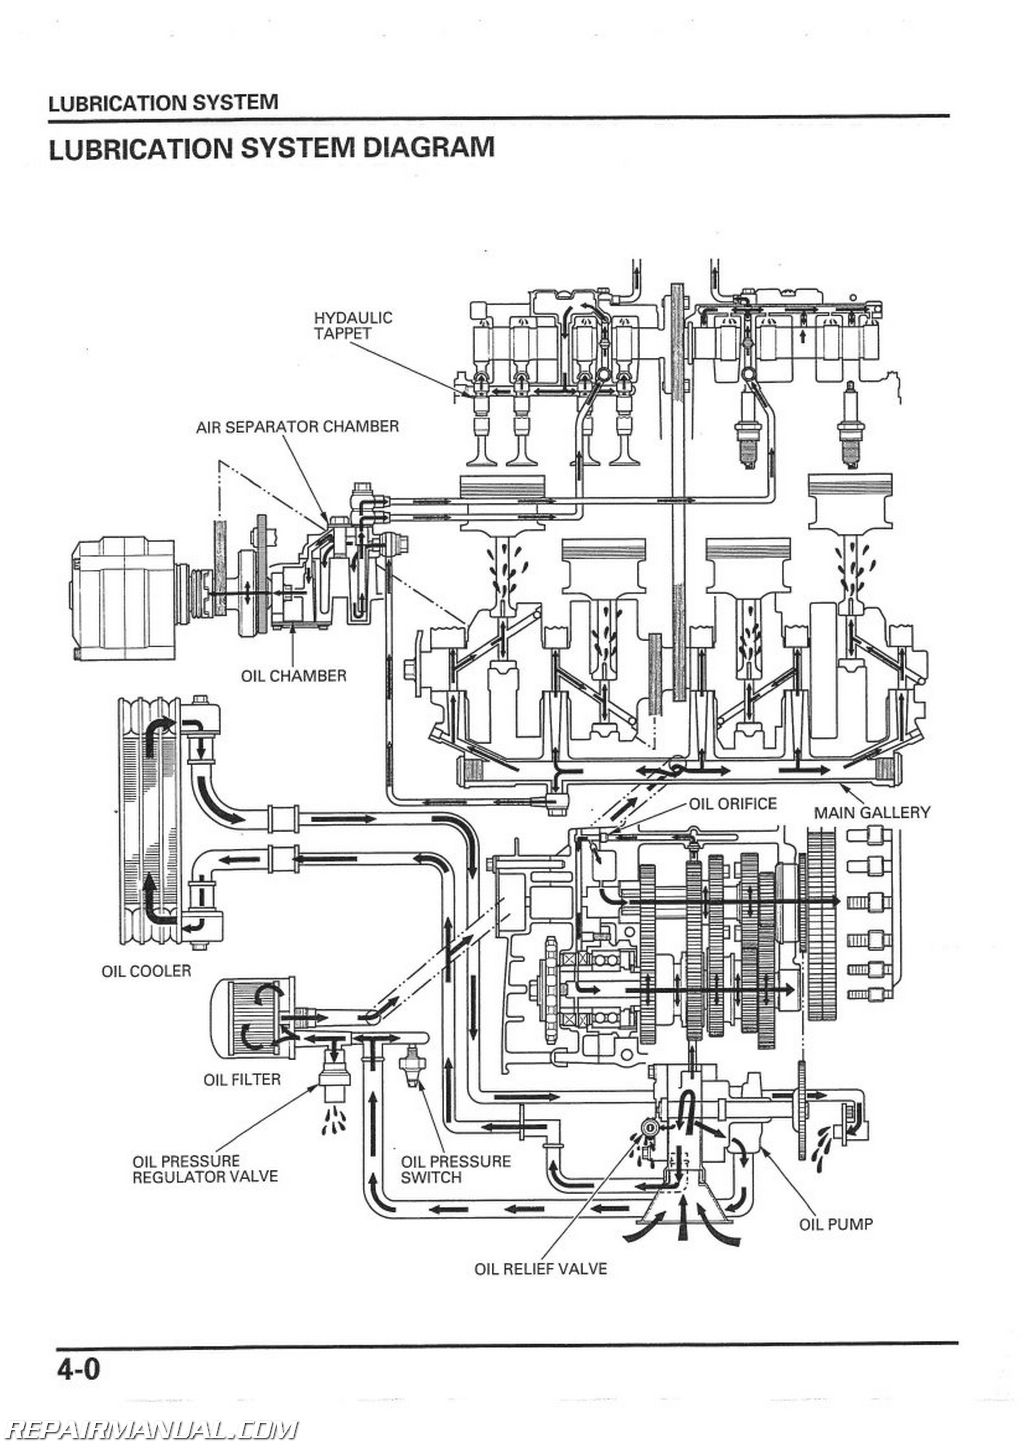 Exelent 1982 Cb750c Wiring Diagram Frieze - Electrical Diagram Ideas ...